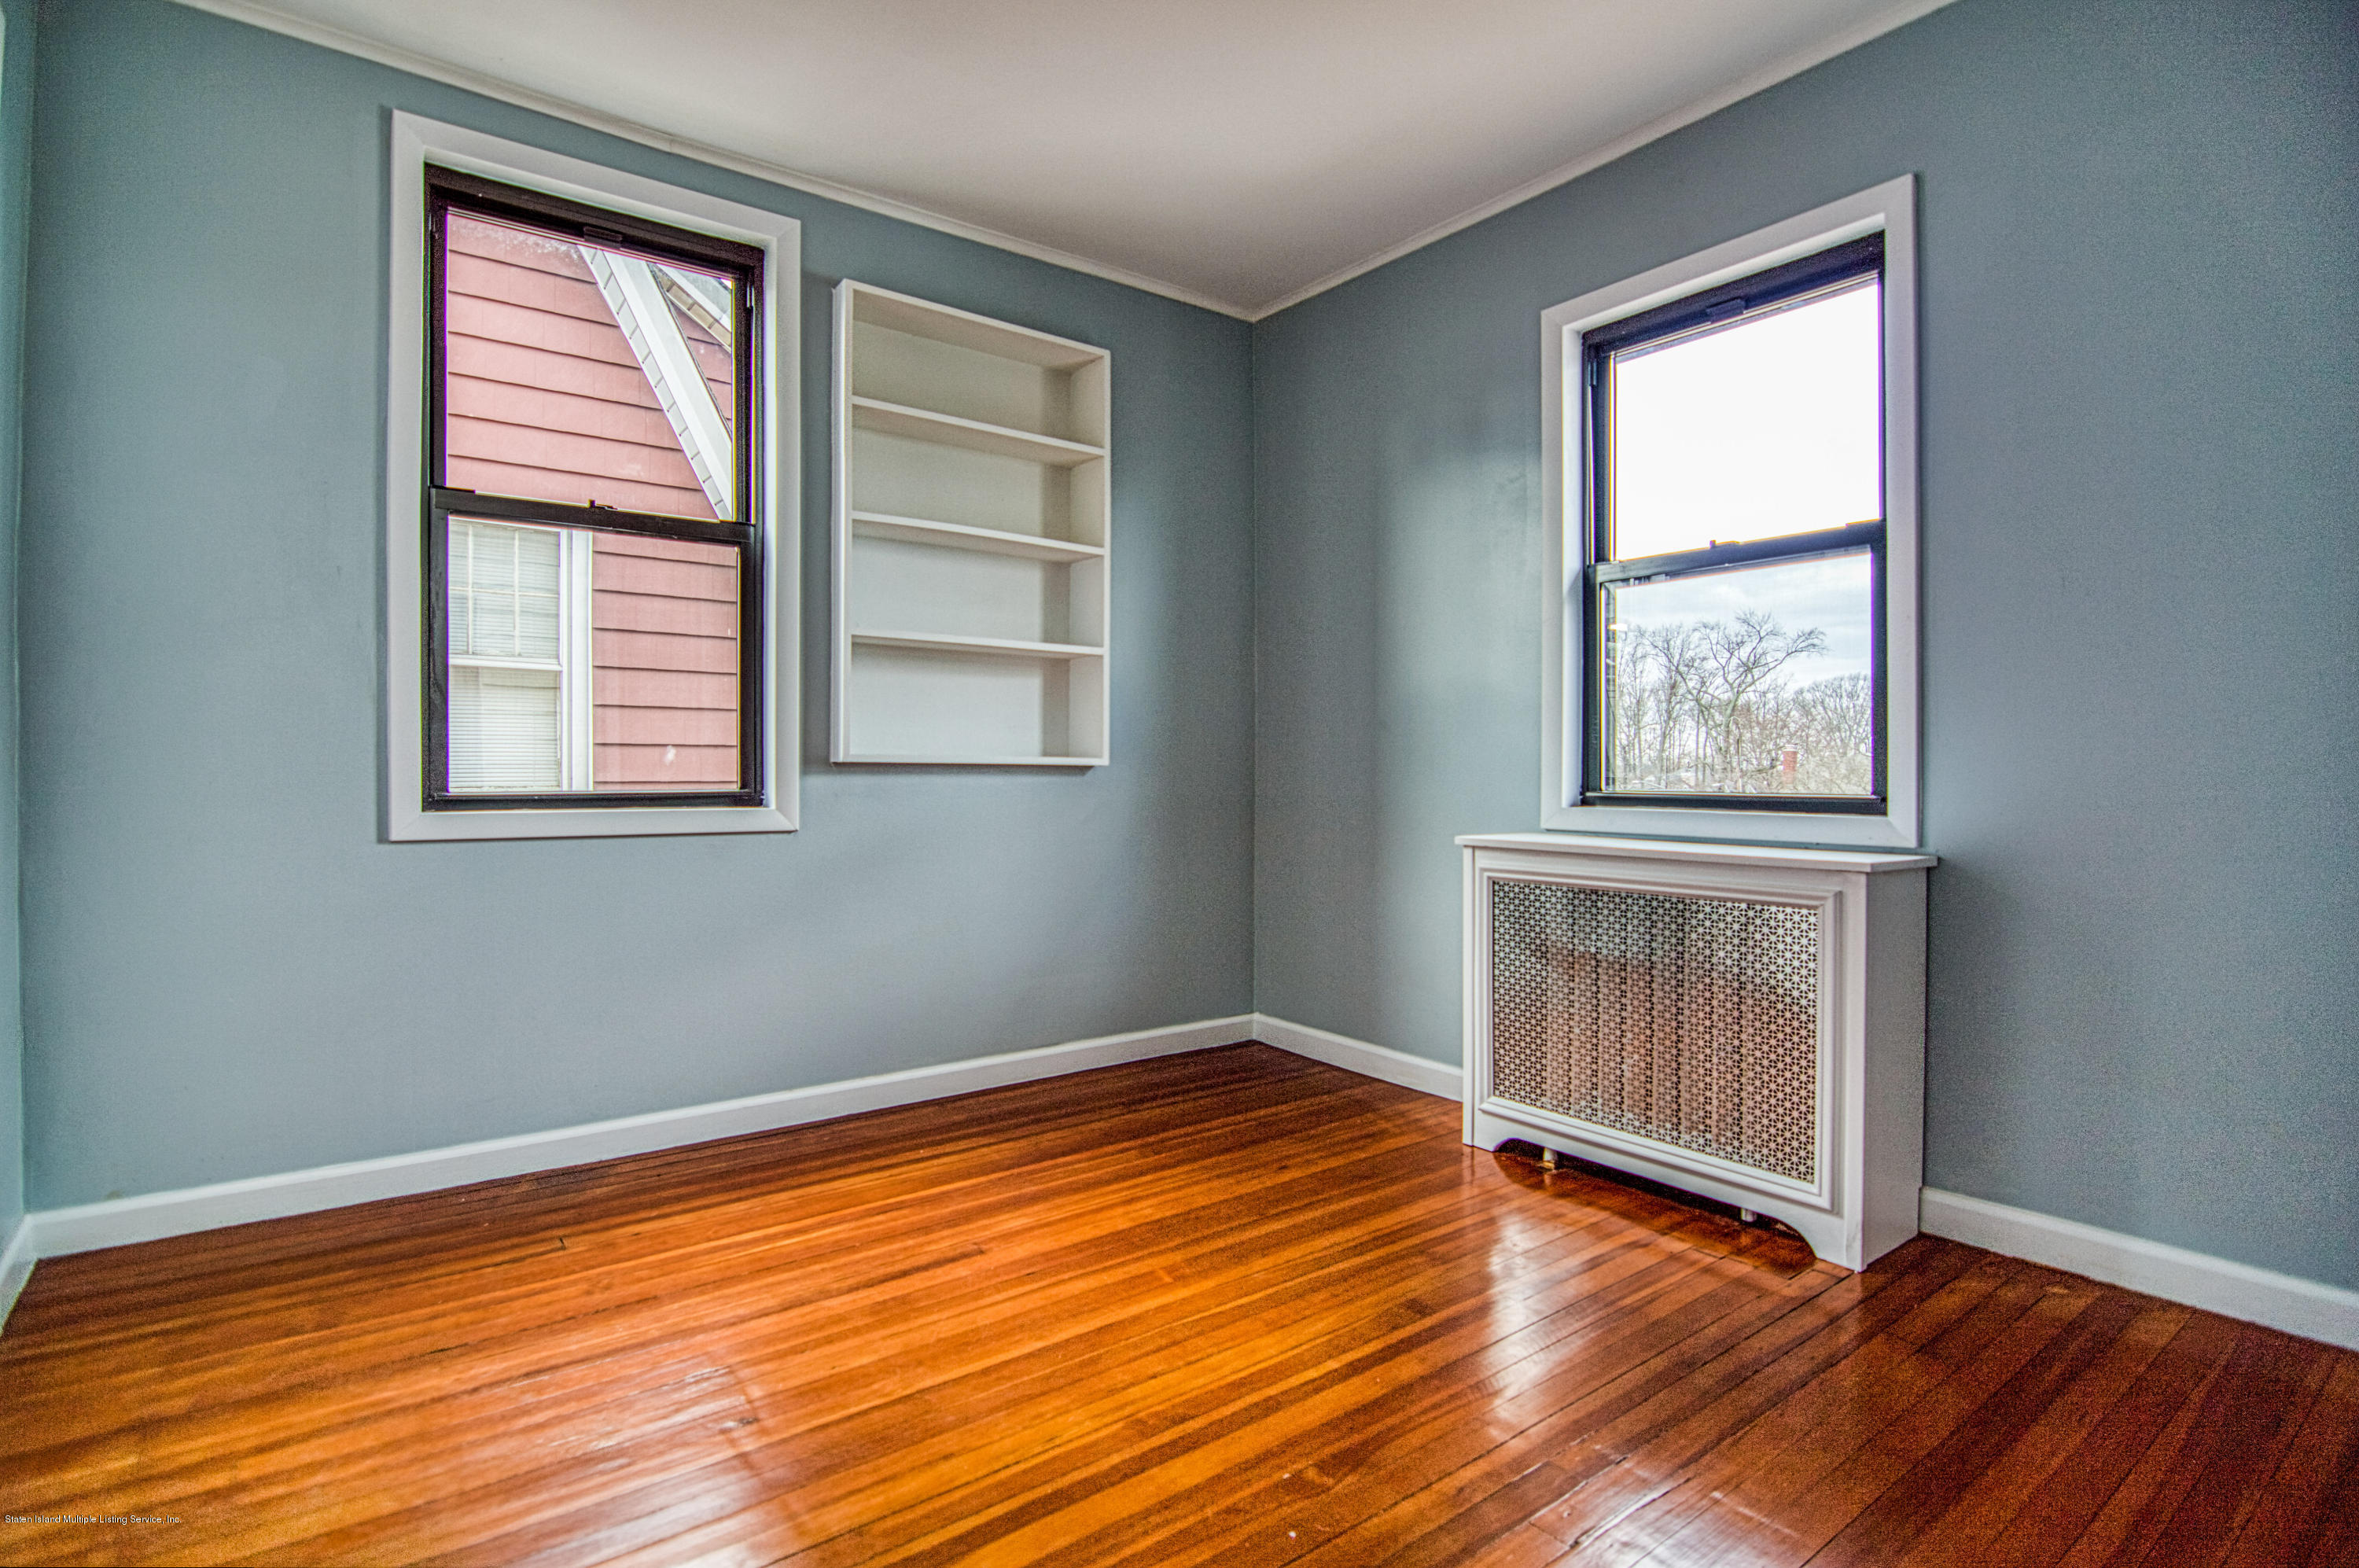 Single Family - Detached 54 Quinlan Avenue  Staten Island, NY 10314, MLS-1135997-15